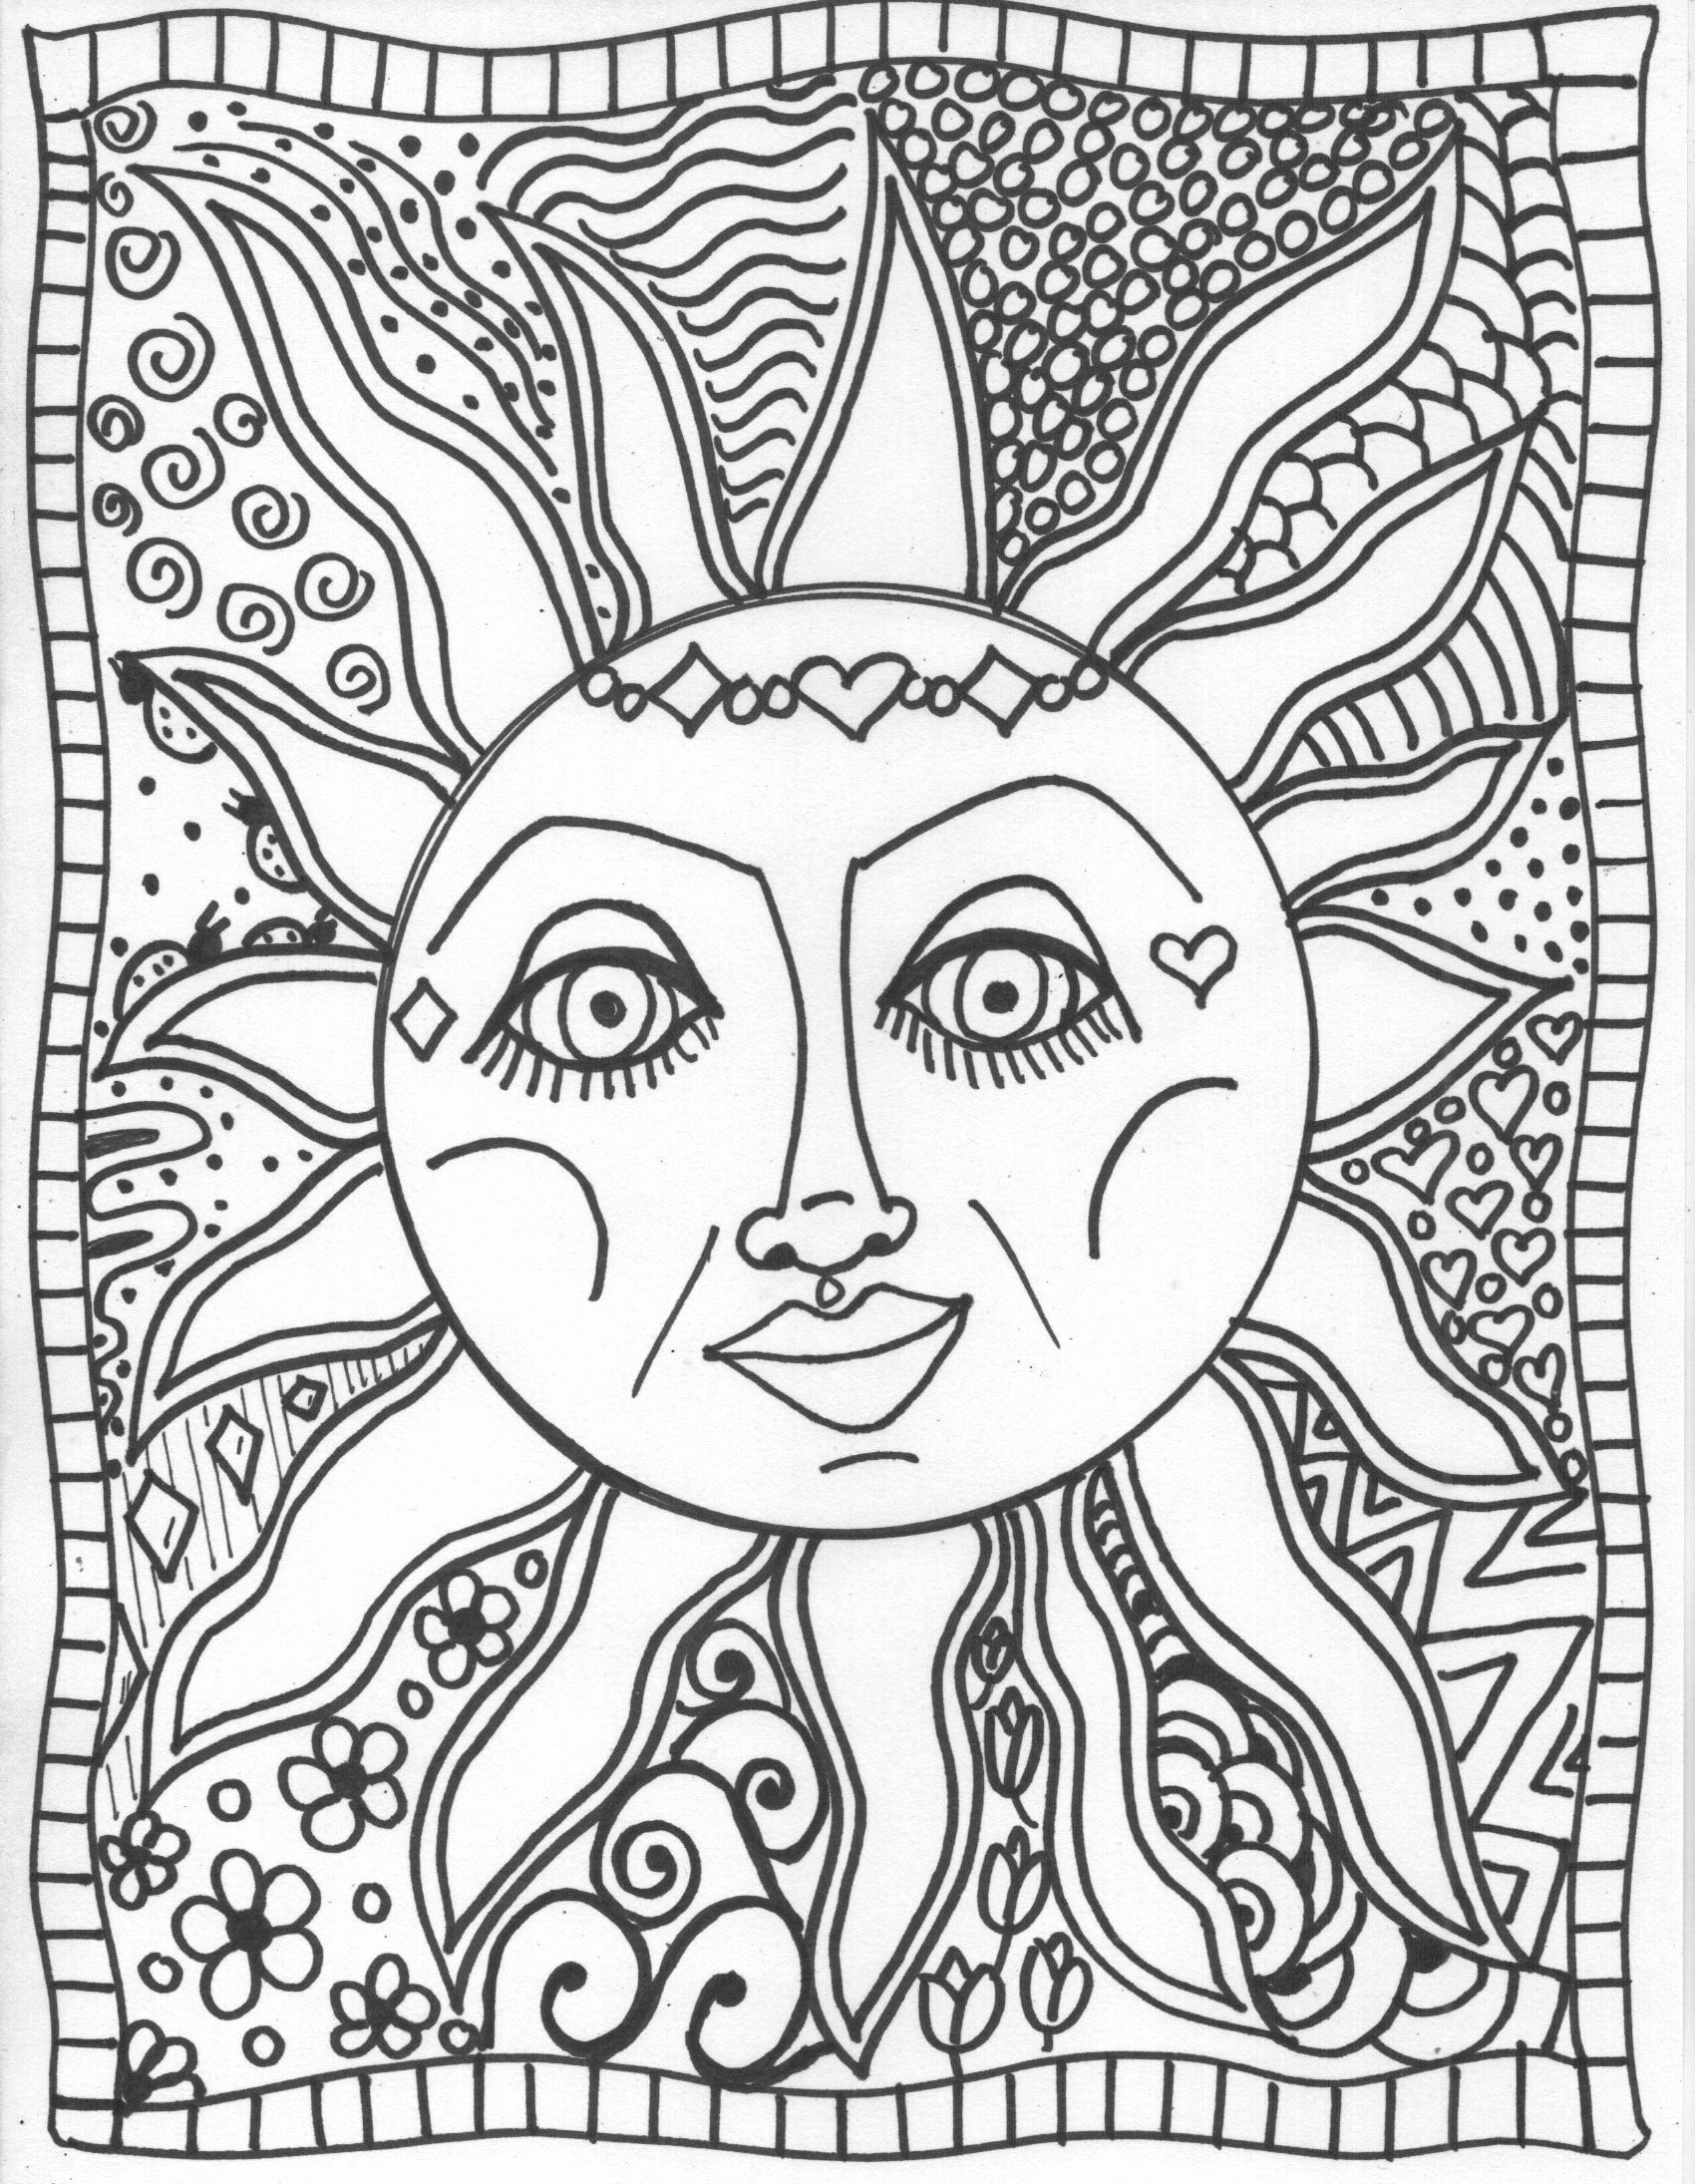 Coloring Pages For All Ages Luxury Cartoon Hippie Coloring Pages In 2020 Moon Coloring Pages Mandala Coloring Pages Tumblr Coloring Pages